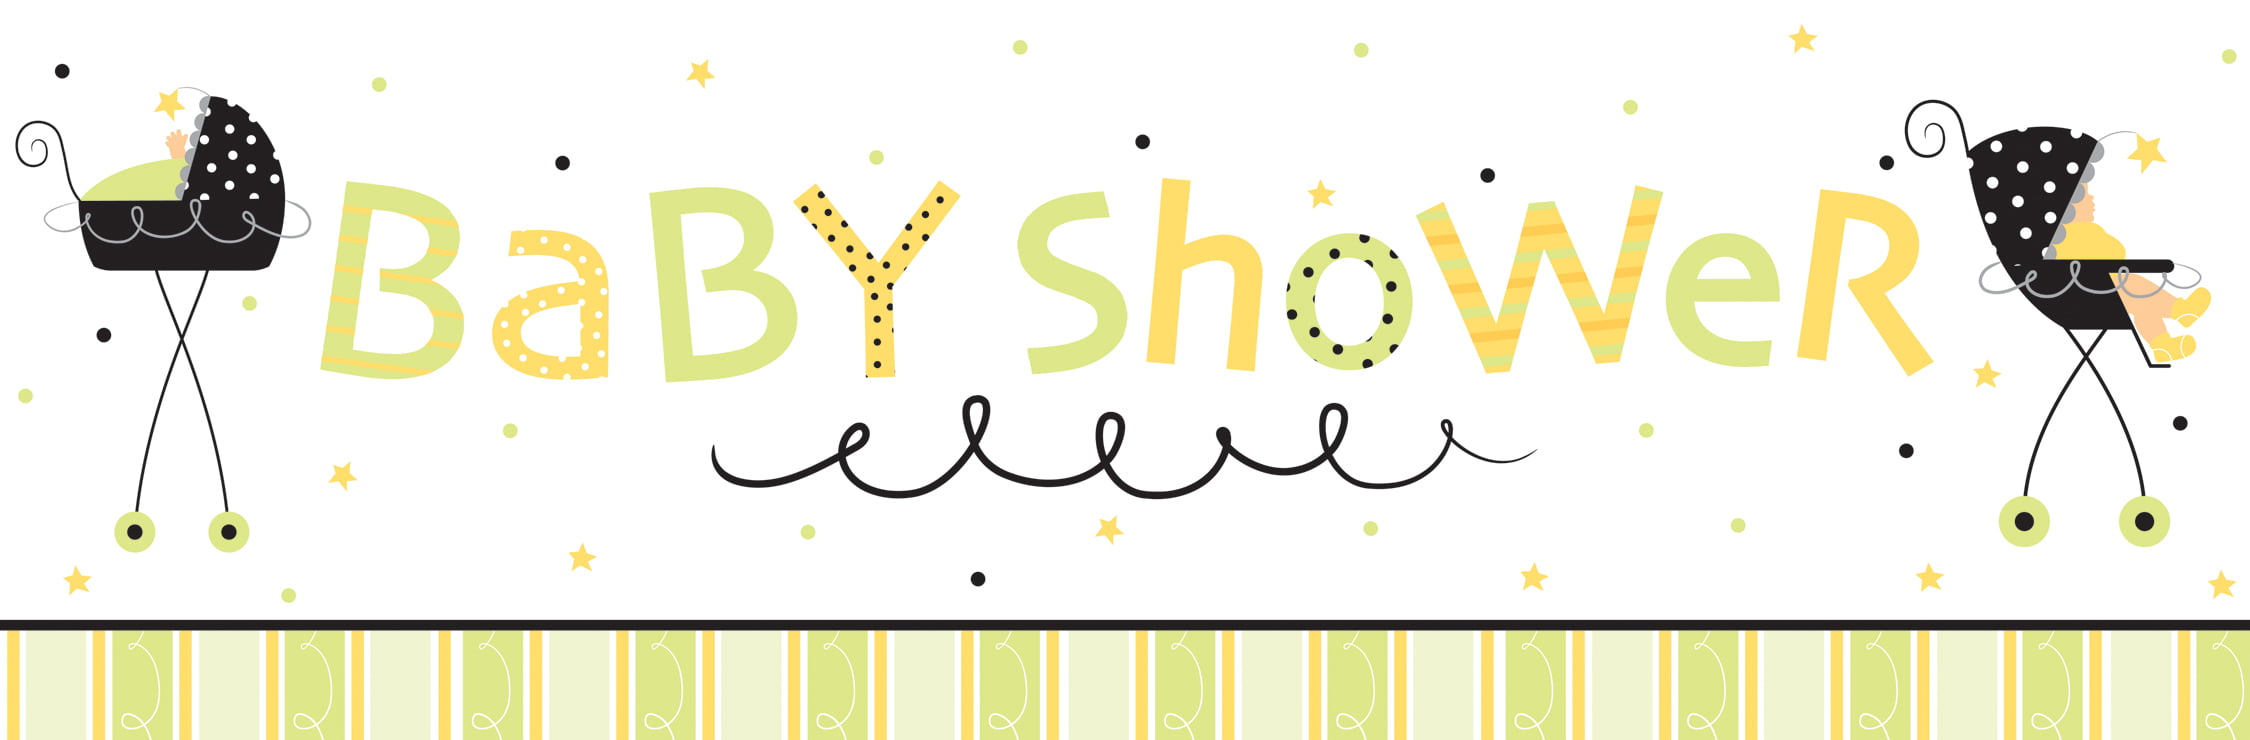 photo about Free Printable Baby Shower Banner identified as How Toward Create Kid Shower Banner With Photoshop ? Free of charge